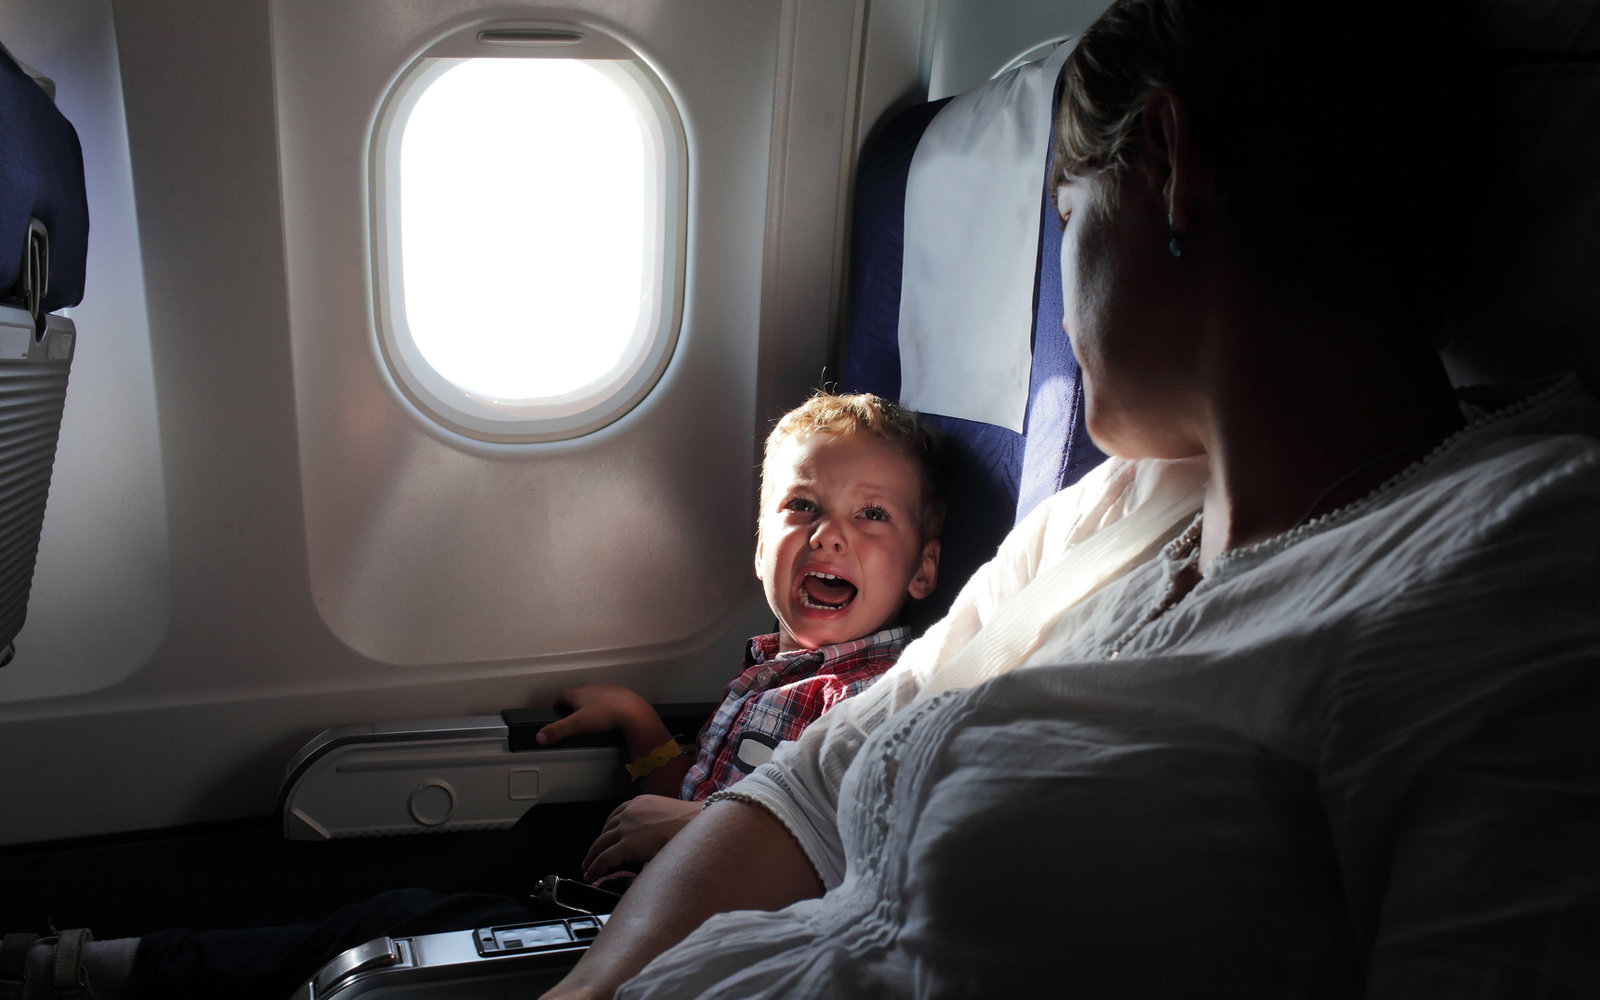 Child Free Zones On Airplanes